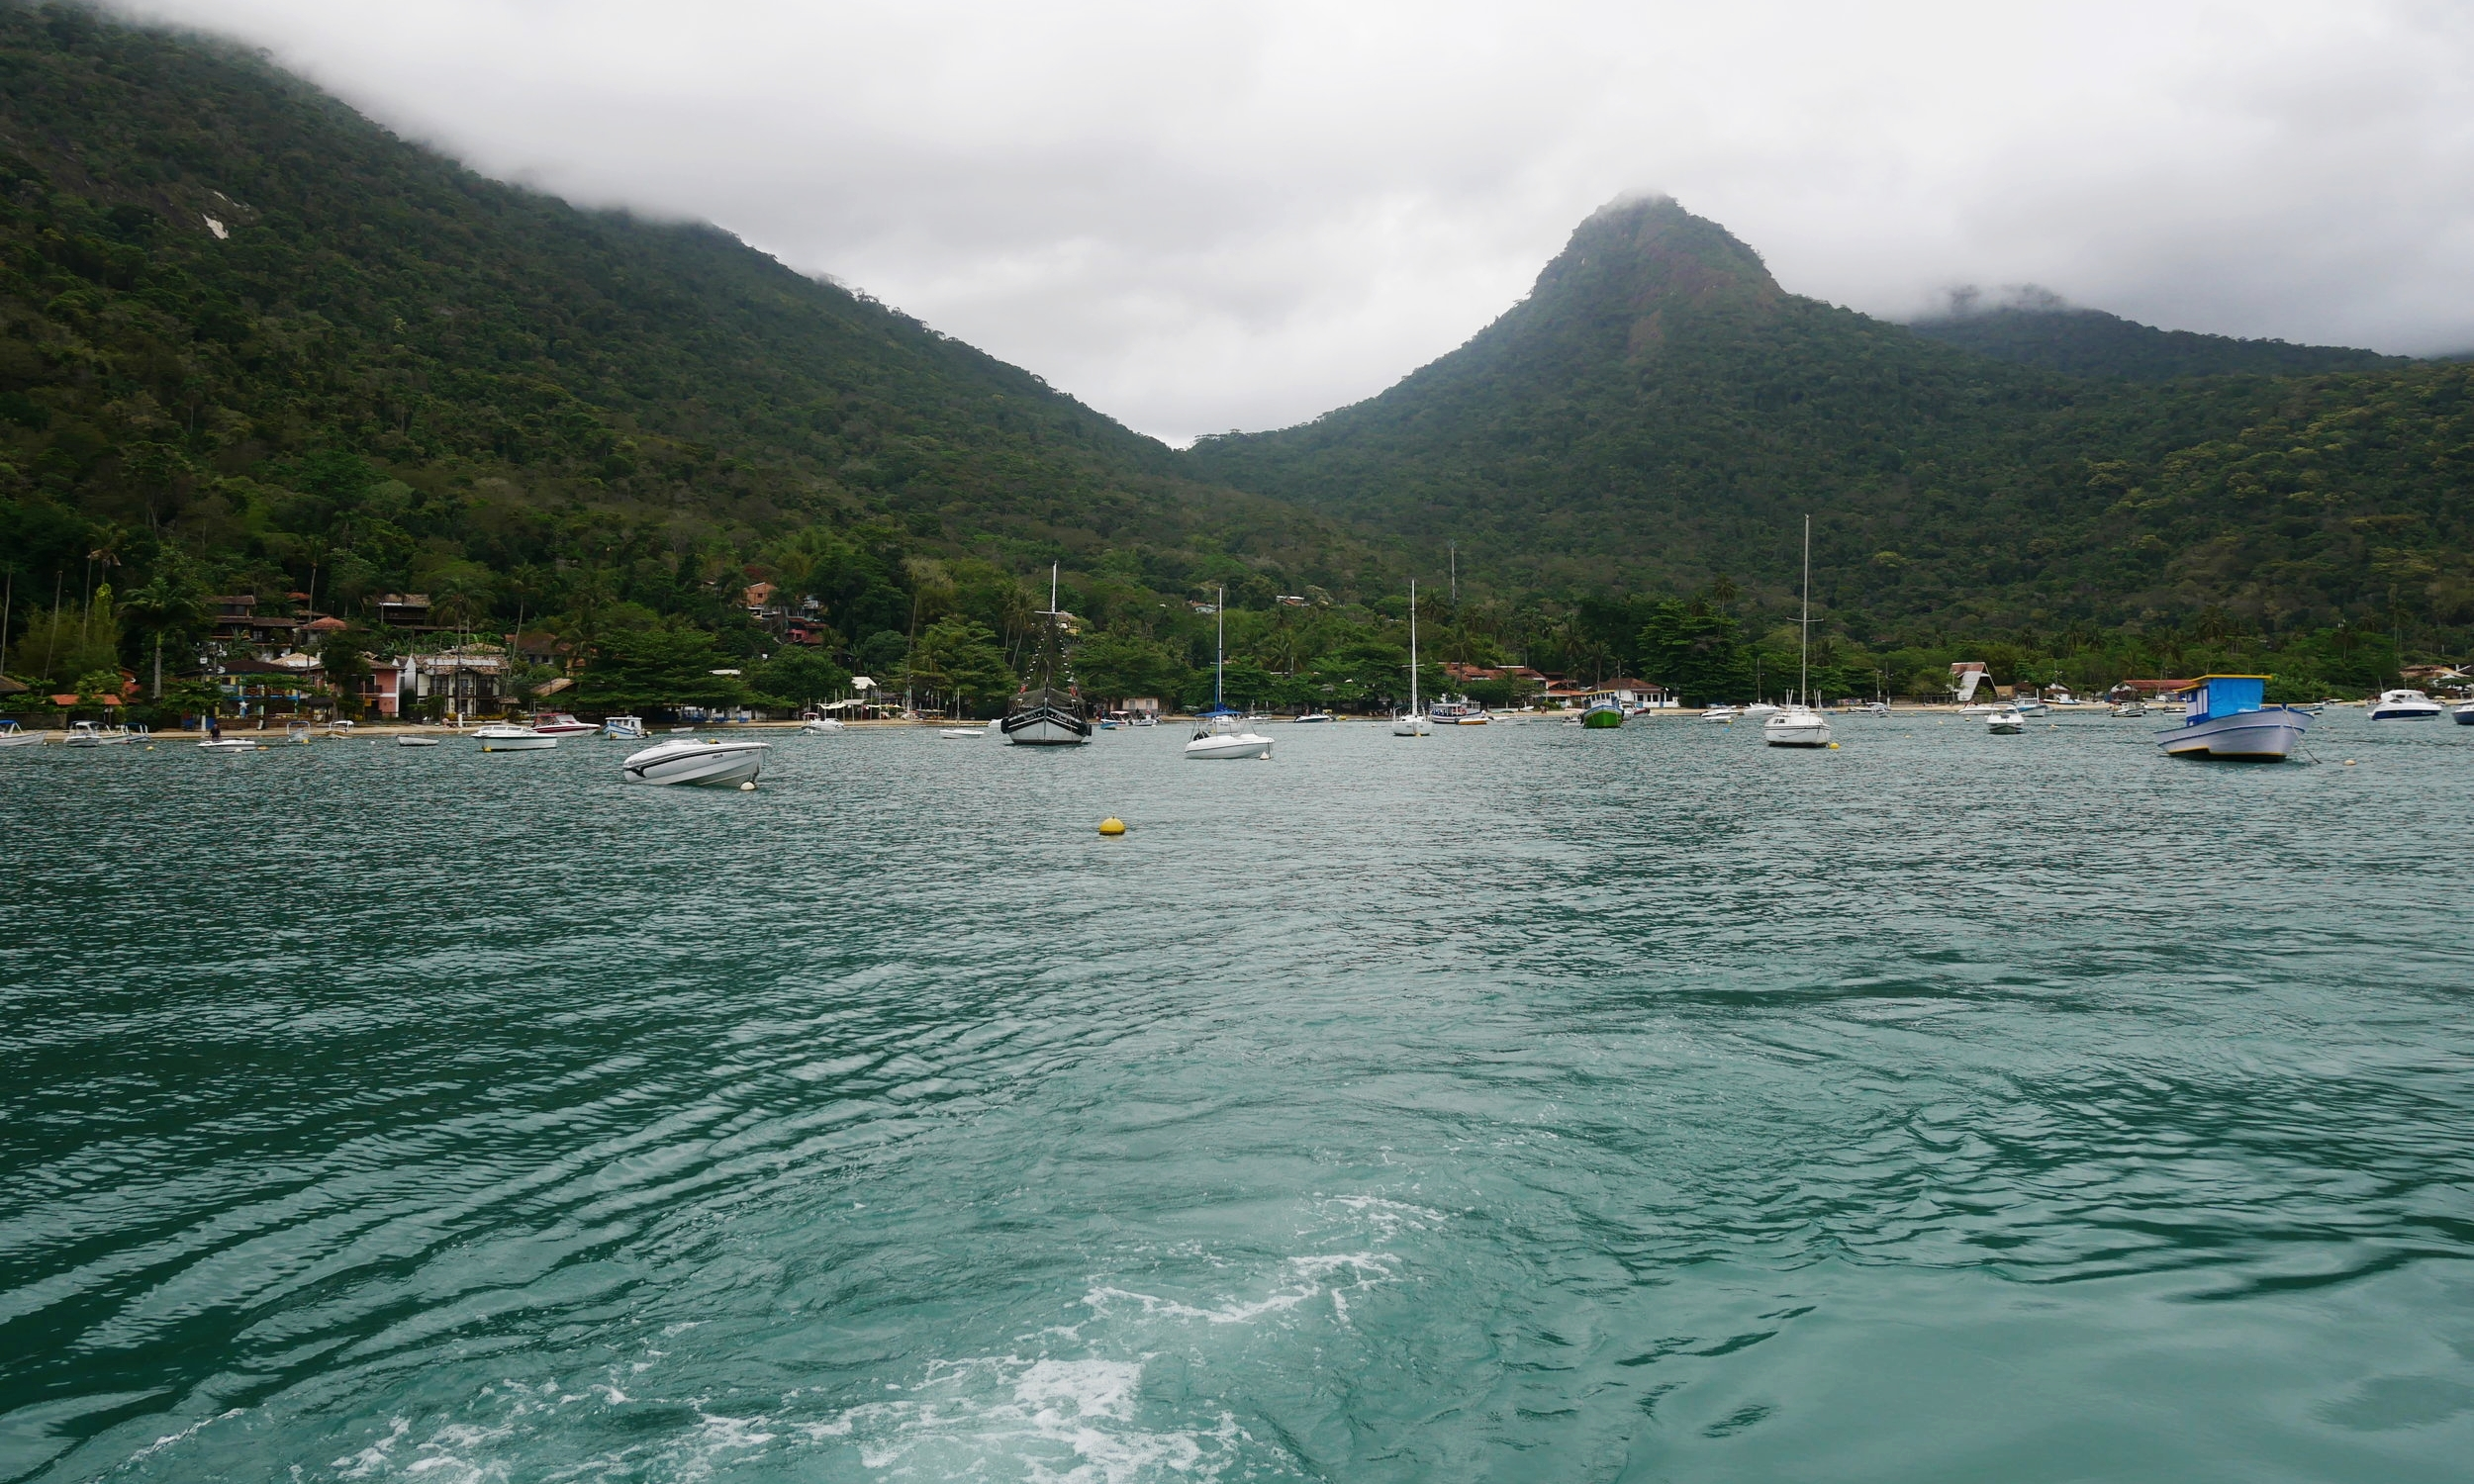 Our ferry arriving at the stunning Ilha Grande